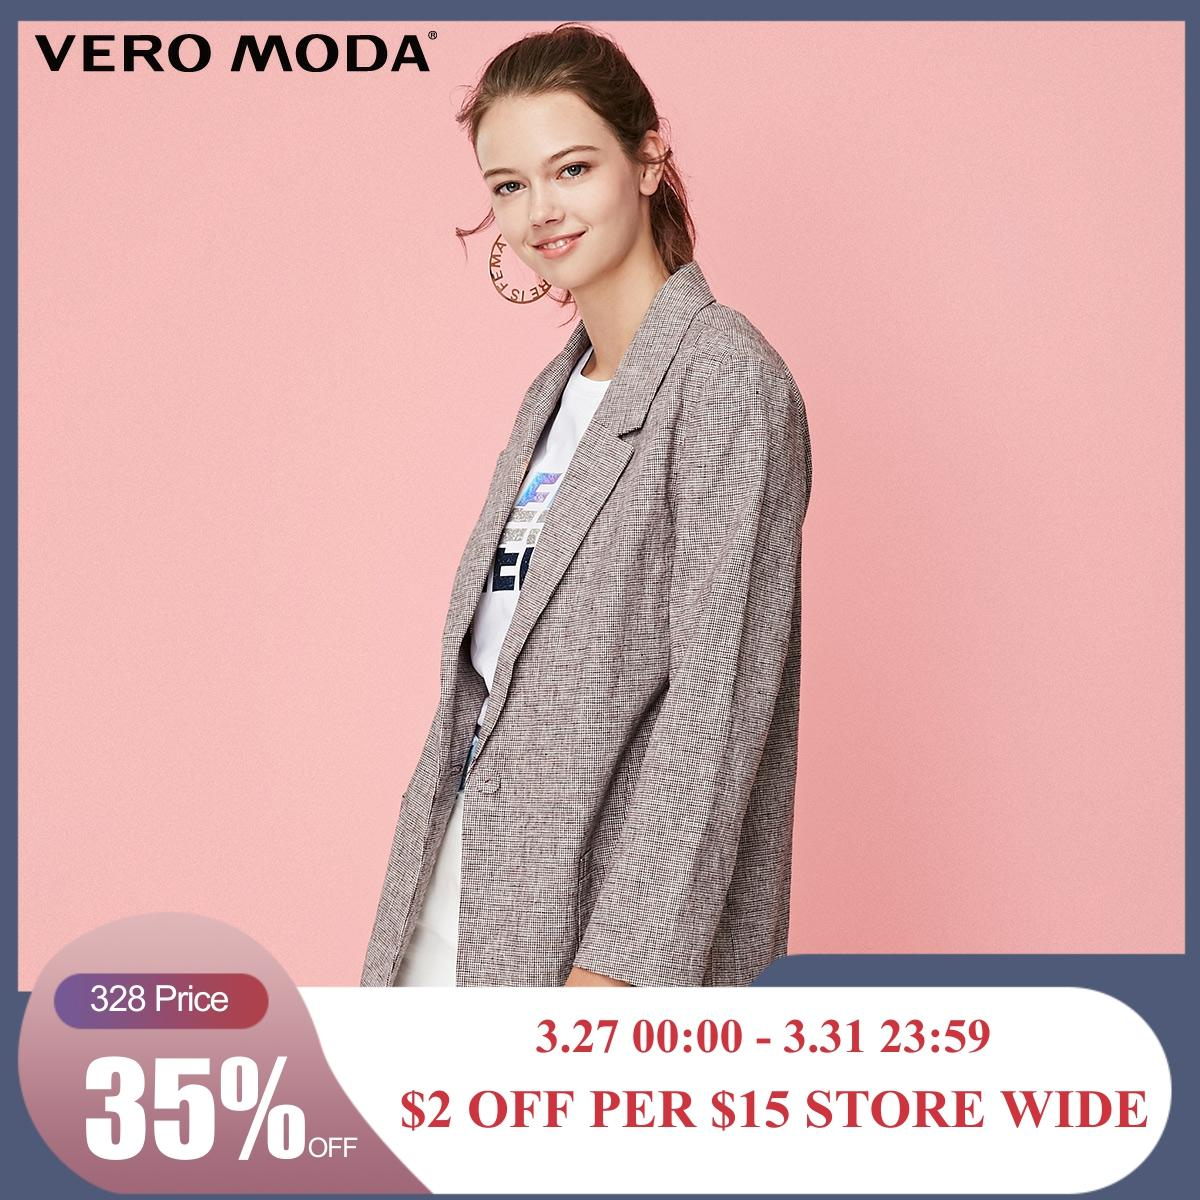 Vero Moda Women's Cotton Plaid Lapel One-button Wrist Sleeves Blazer | 319108512